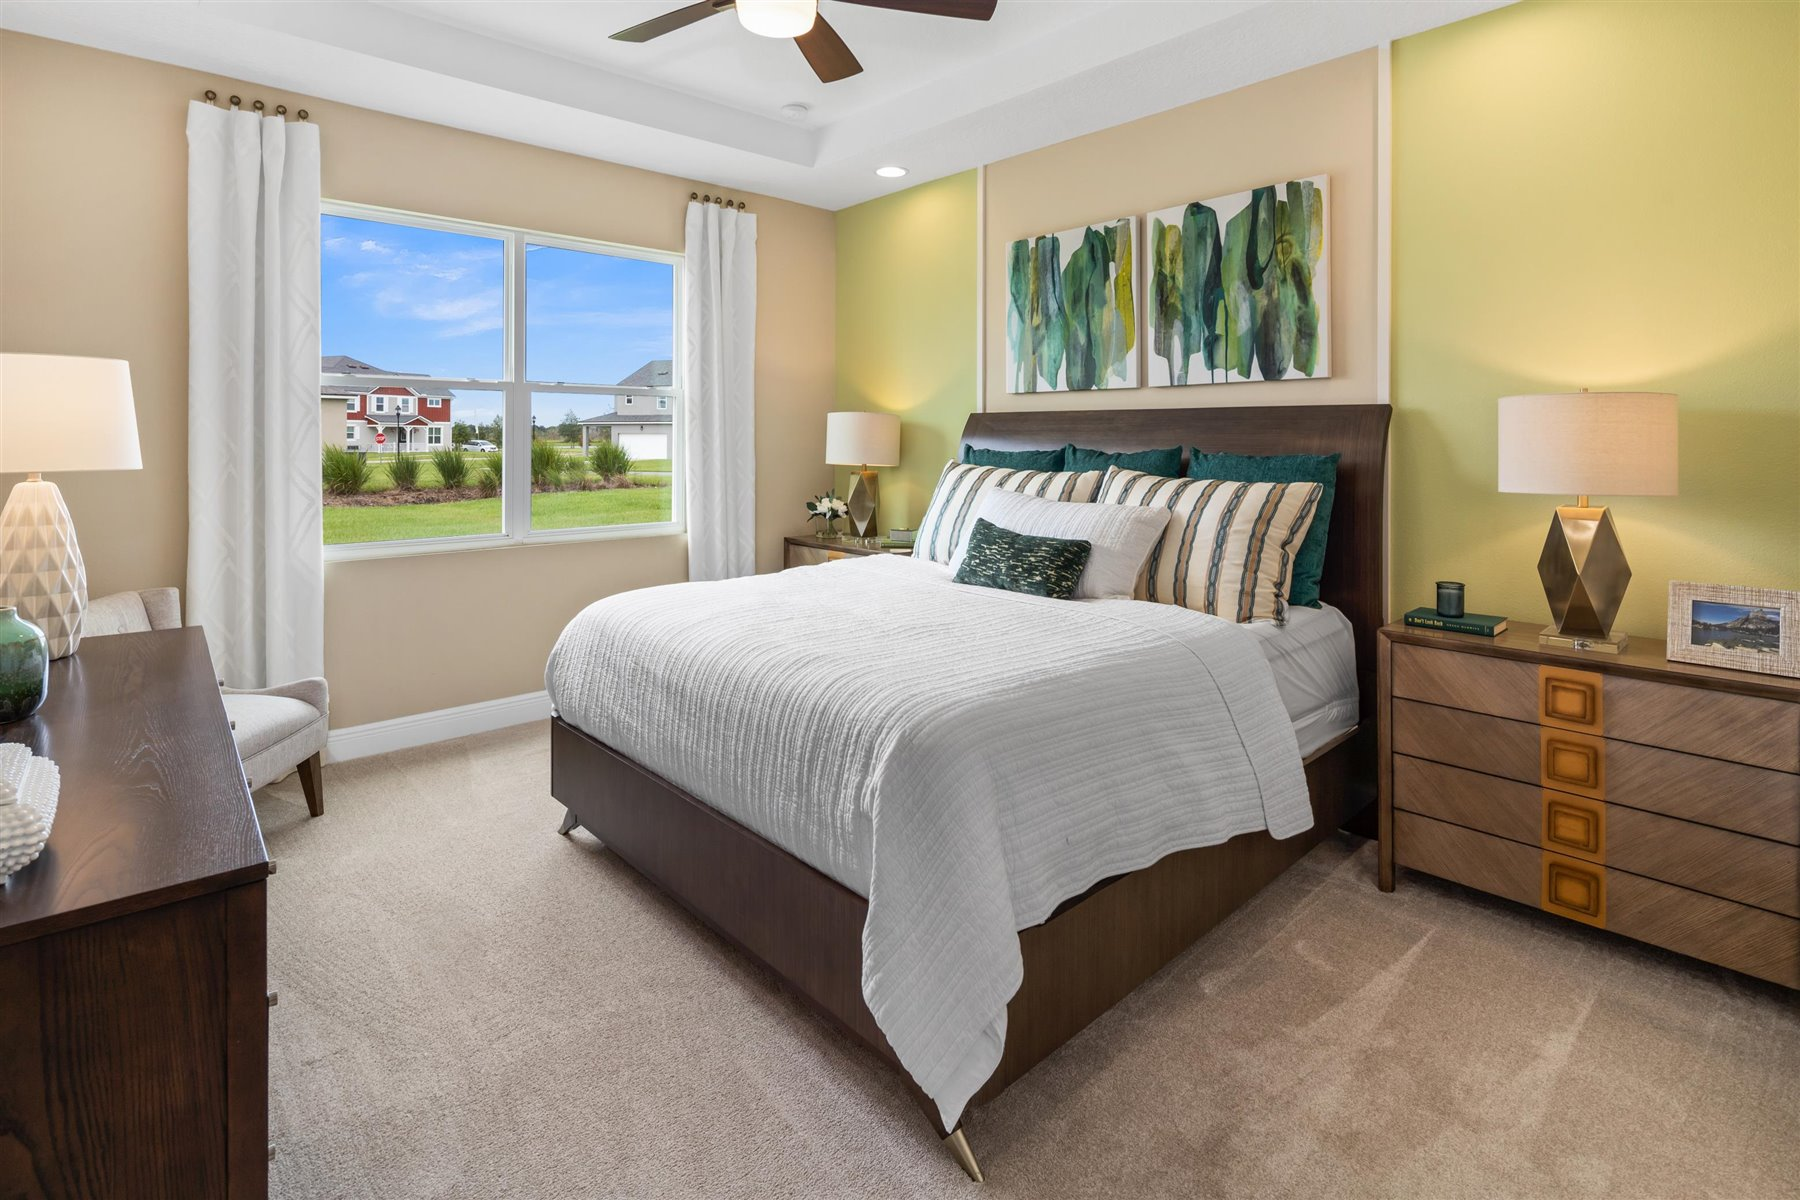 Avondale Plan Bedroom at Tohoqua in Kissimmee Florida by Mattamy Homes